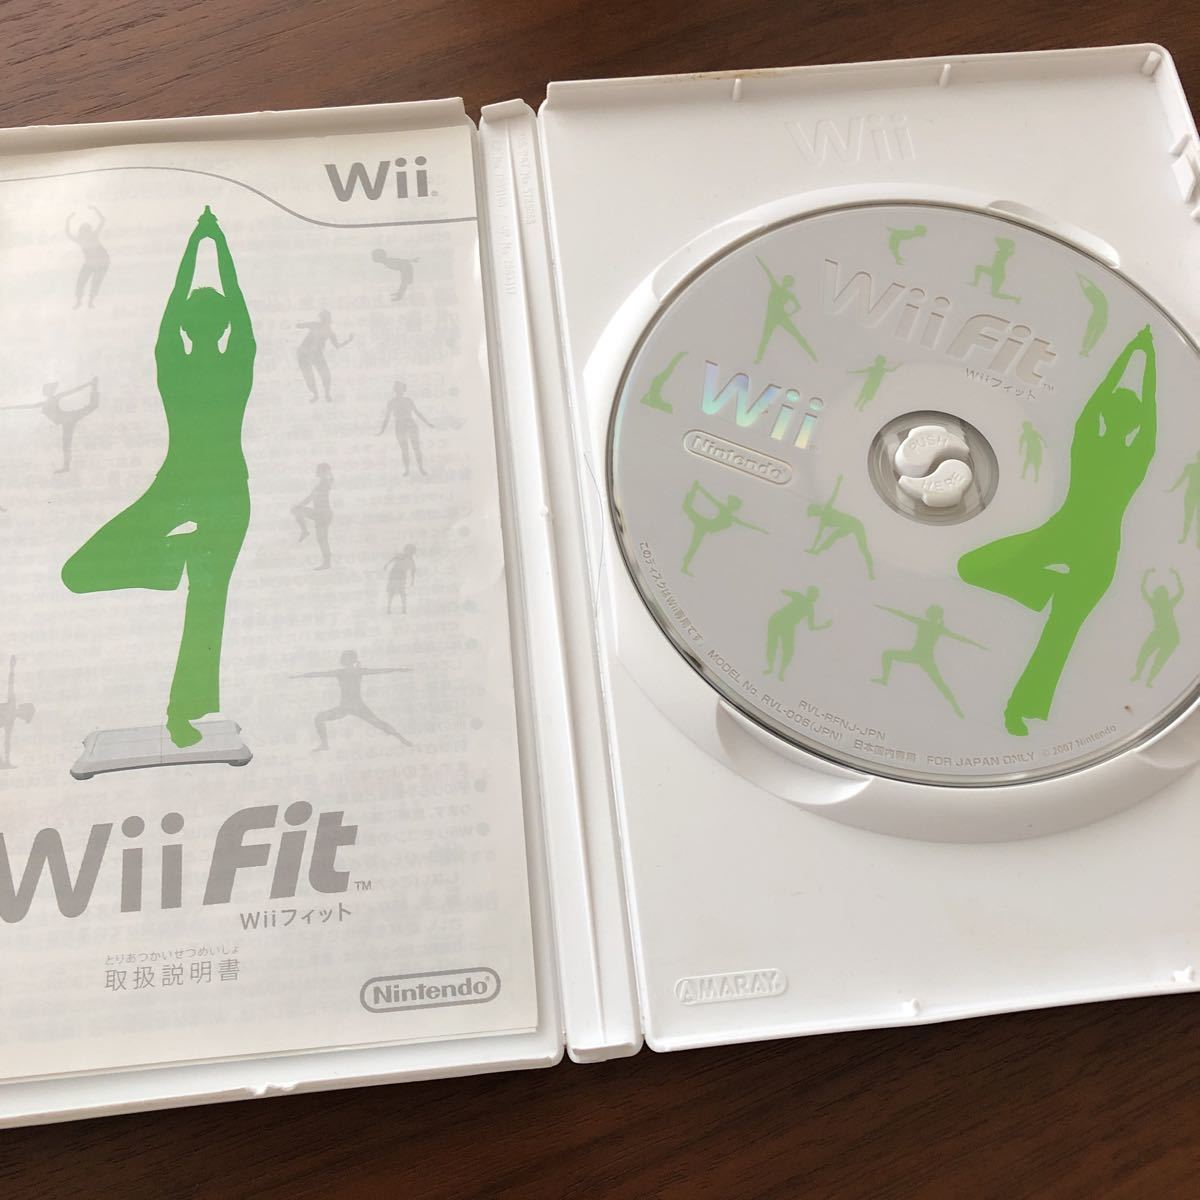 Wii Fit wii ソフト単品